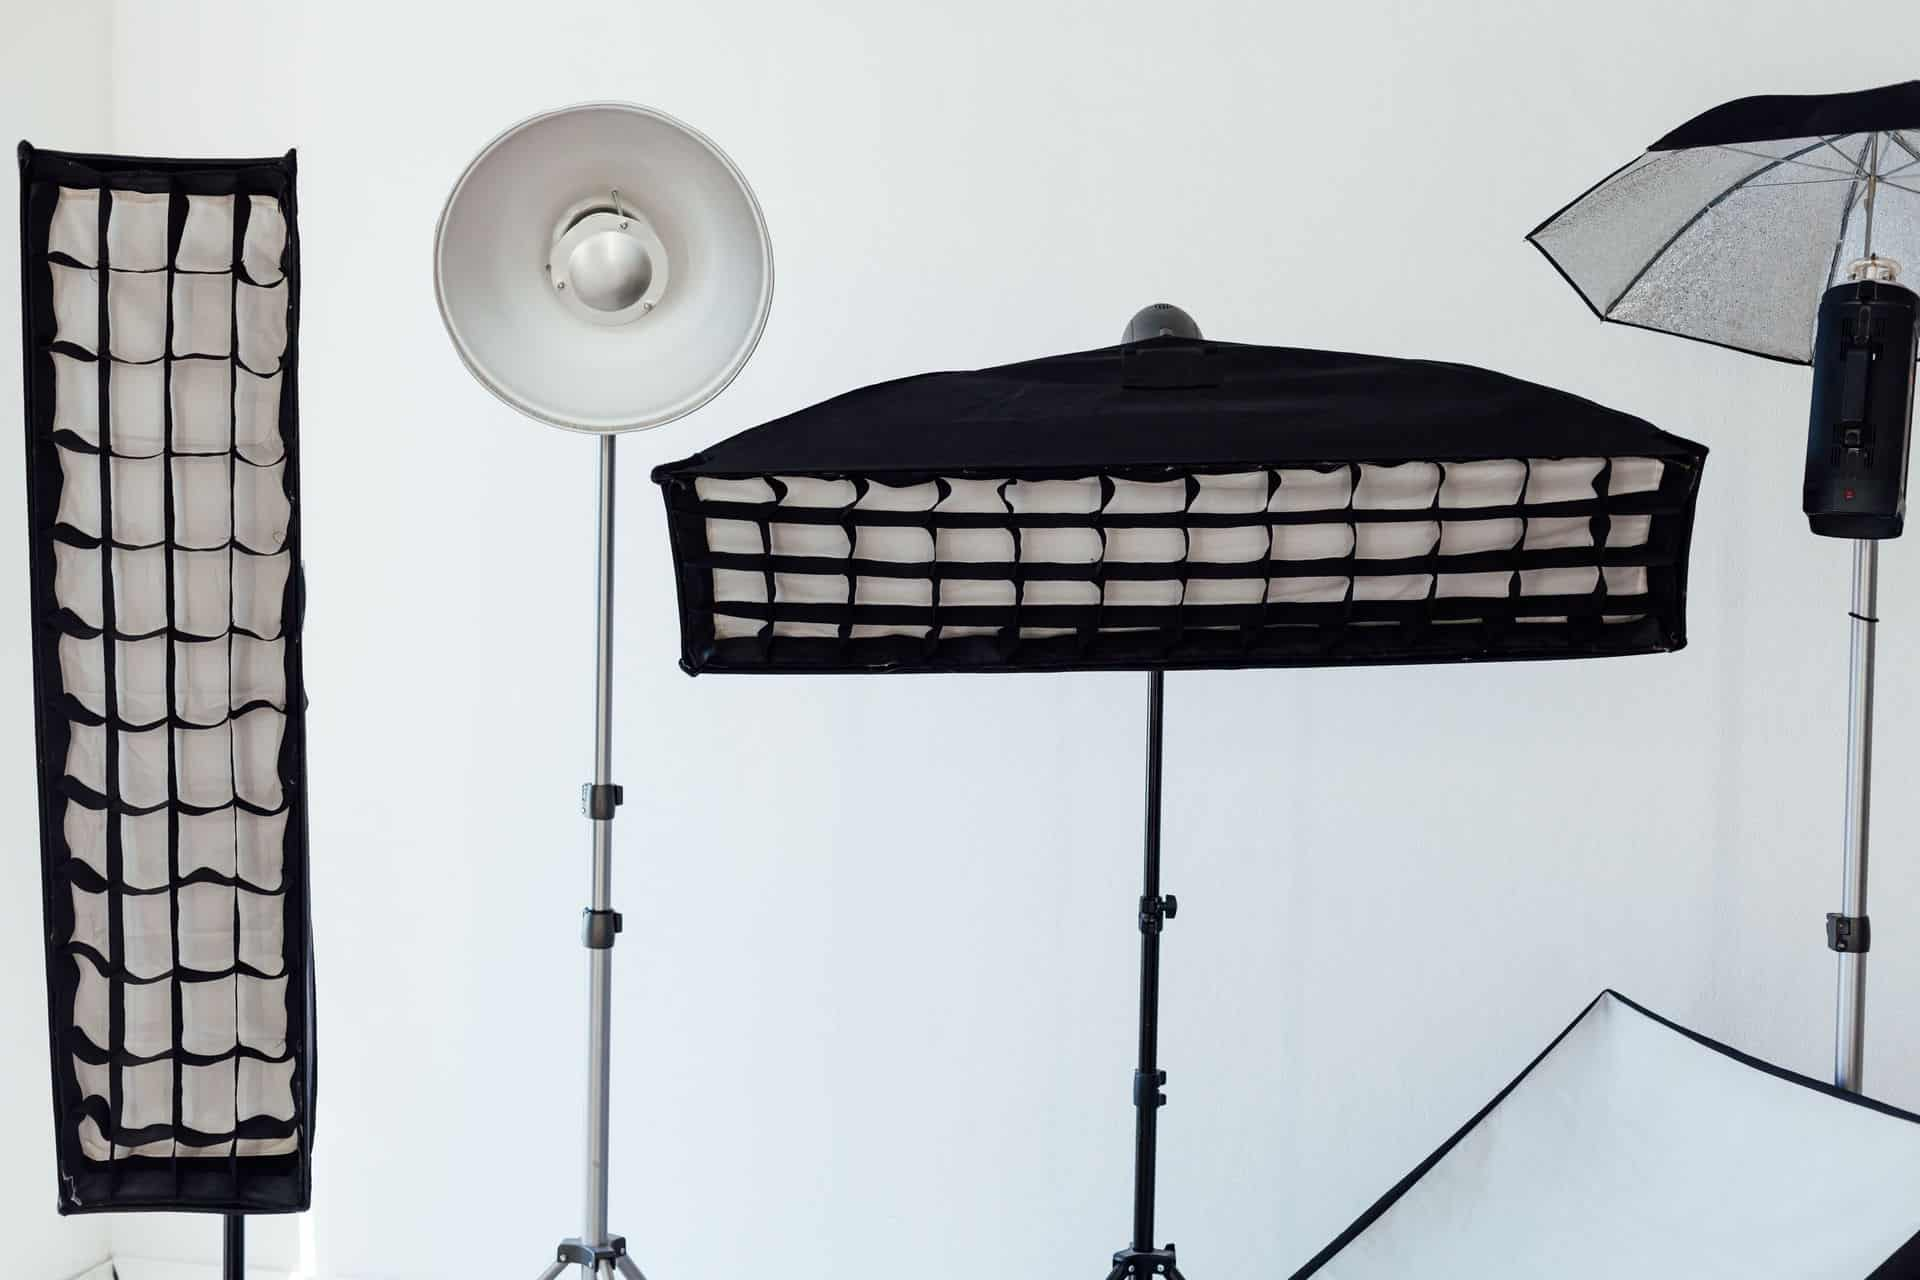 How to Use a Speedlight With a Softbox: An Essential Guide